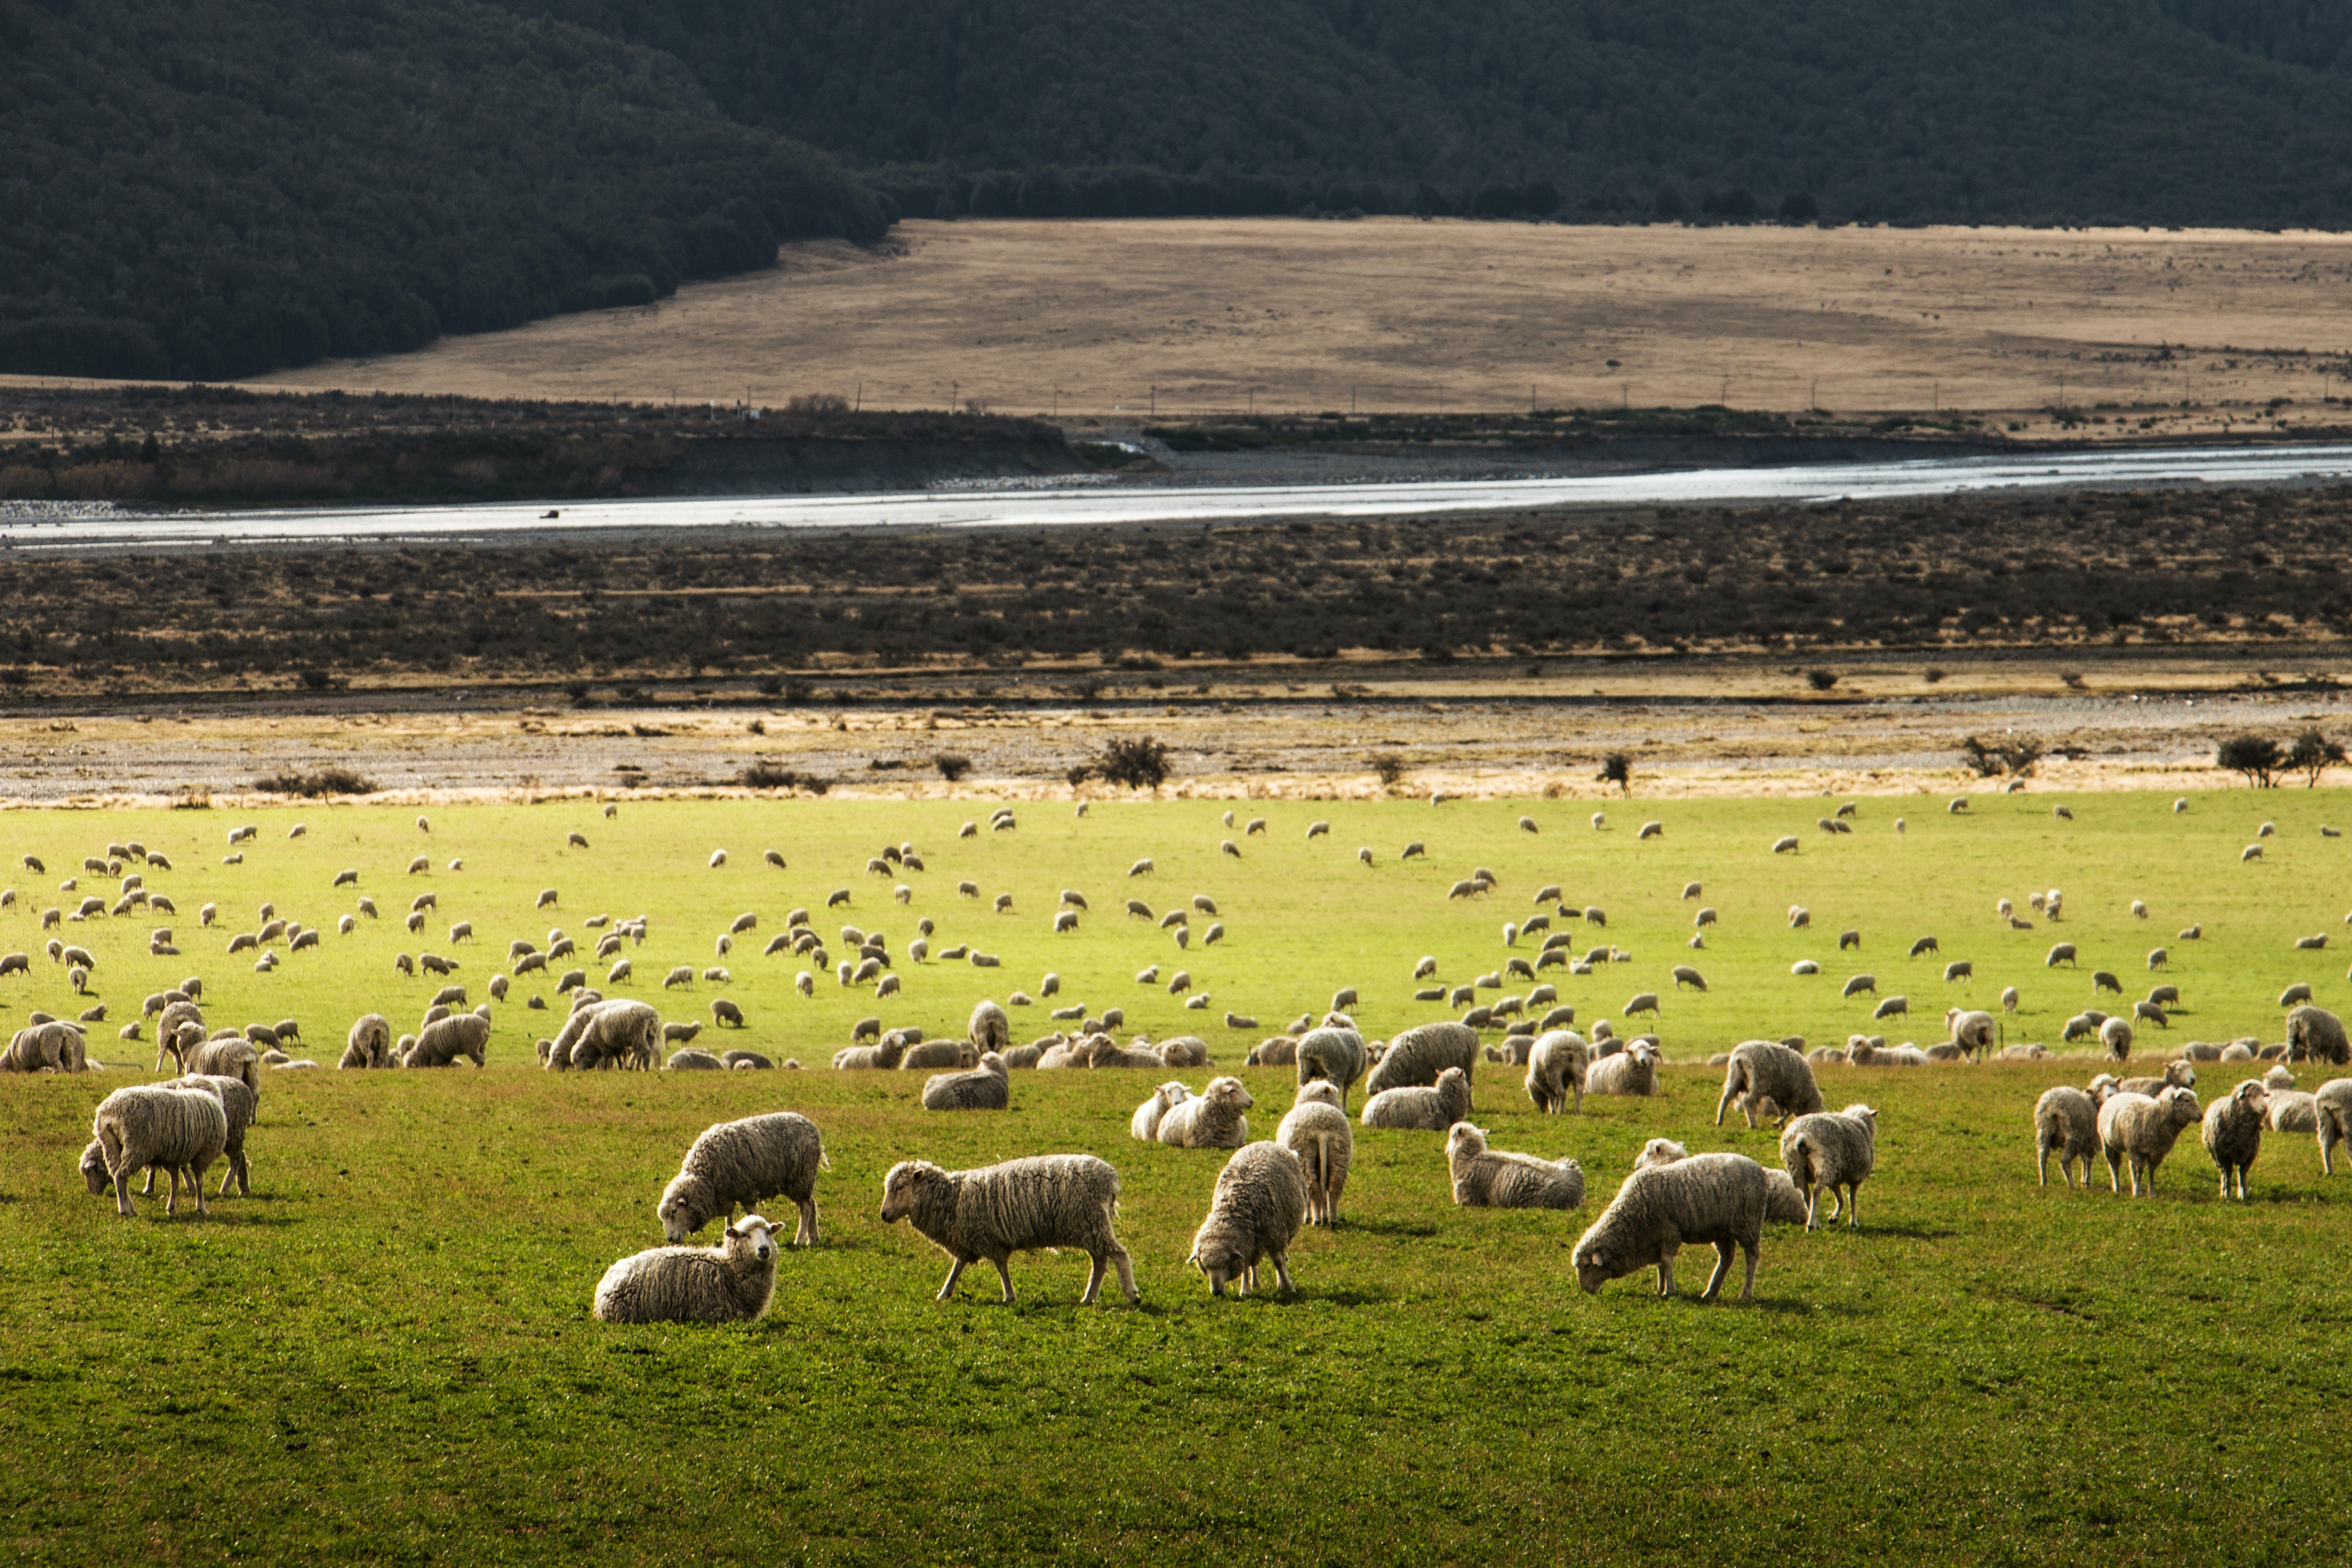 A field of dozens of sheep grazing and walking around on green grass beside a highway curring through a desert plain and a dark forest